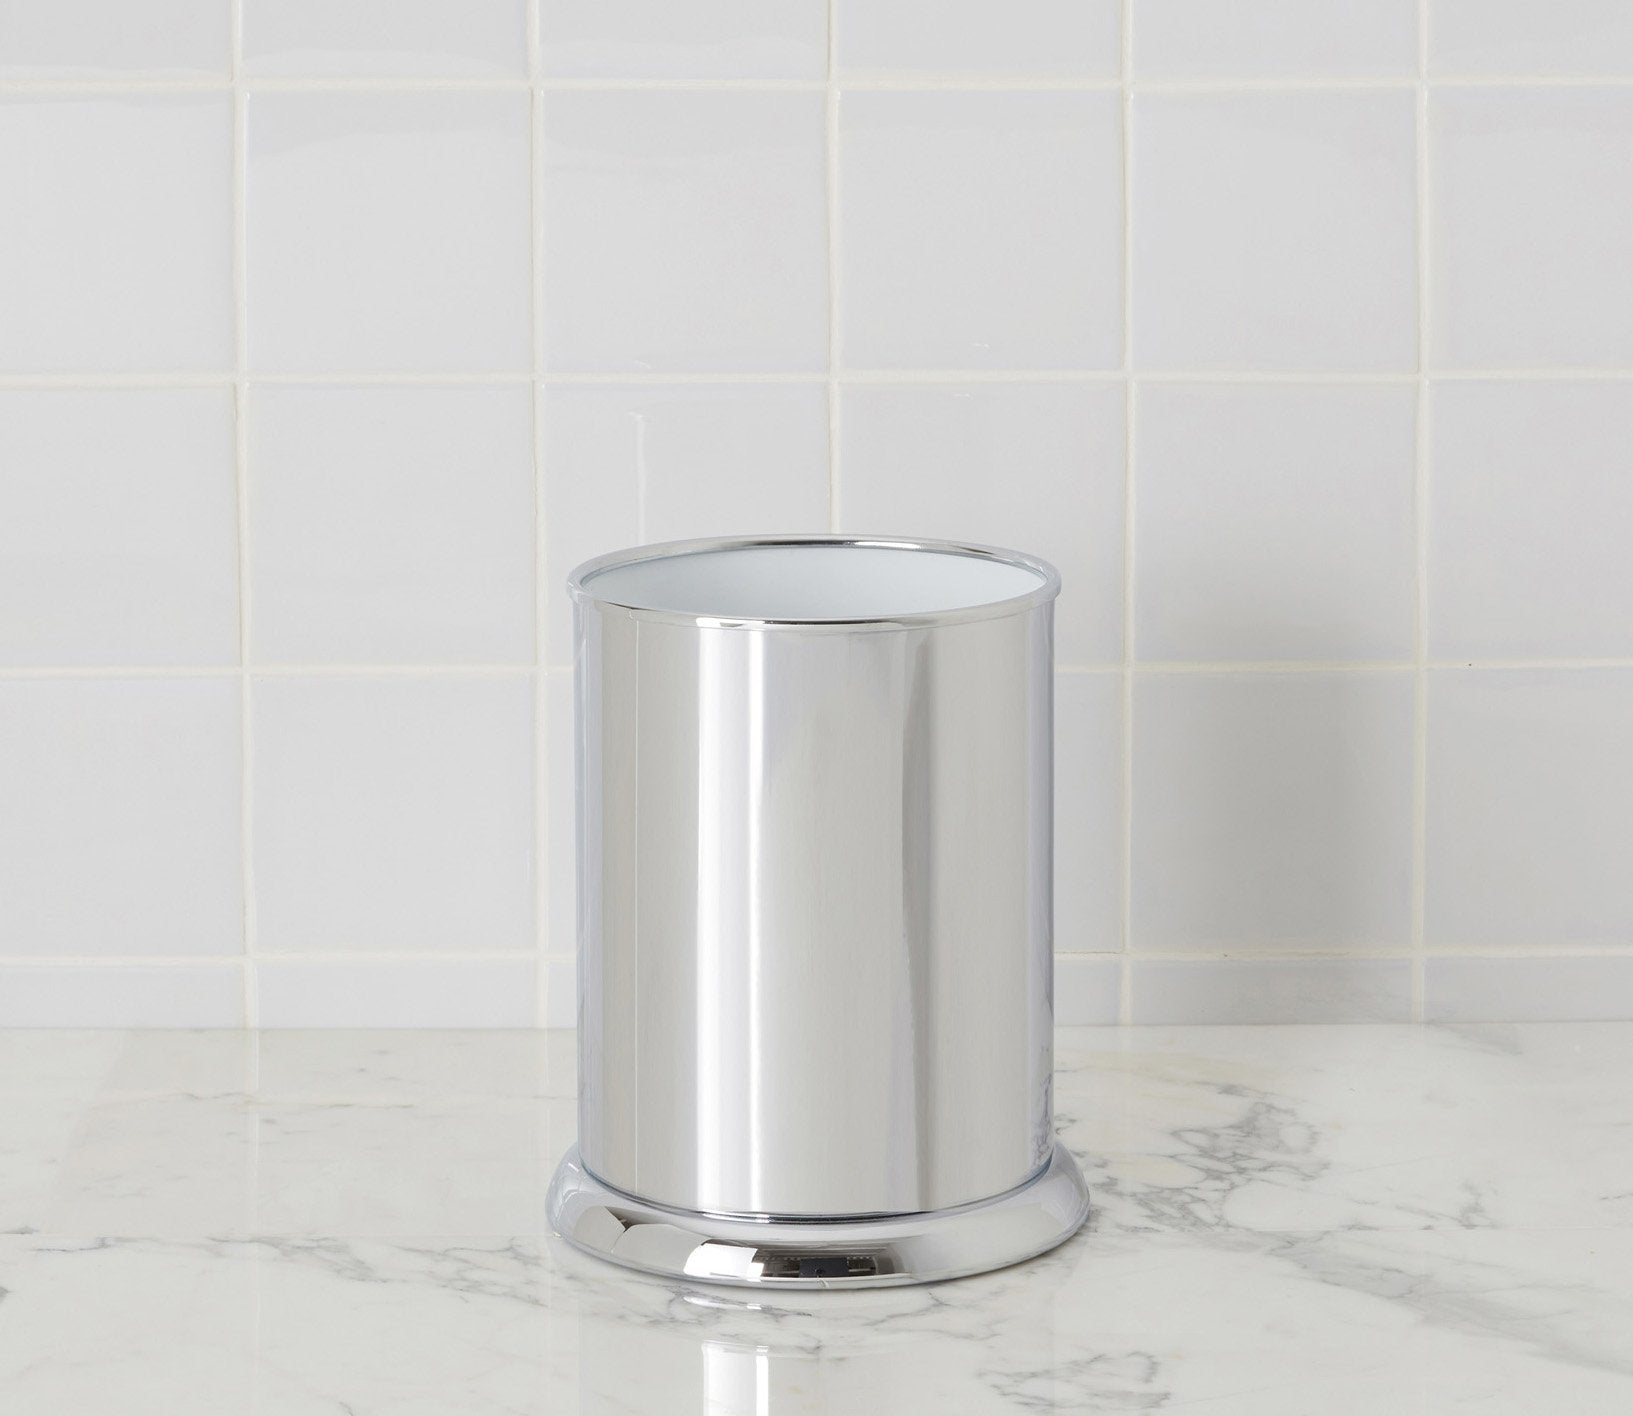 Universal Waste Bin Round Product Image 2